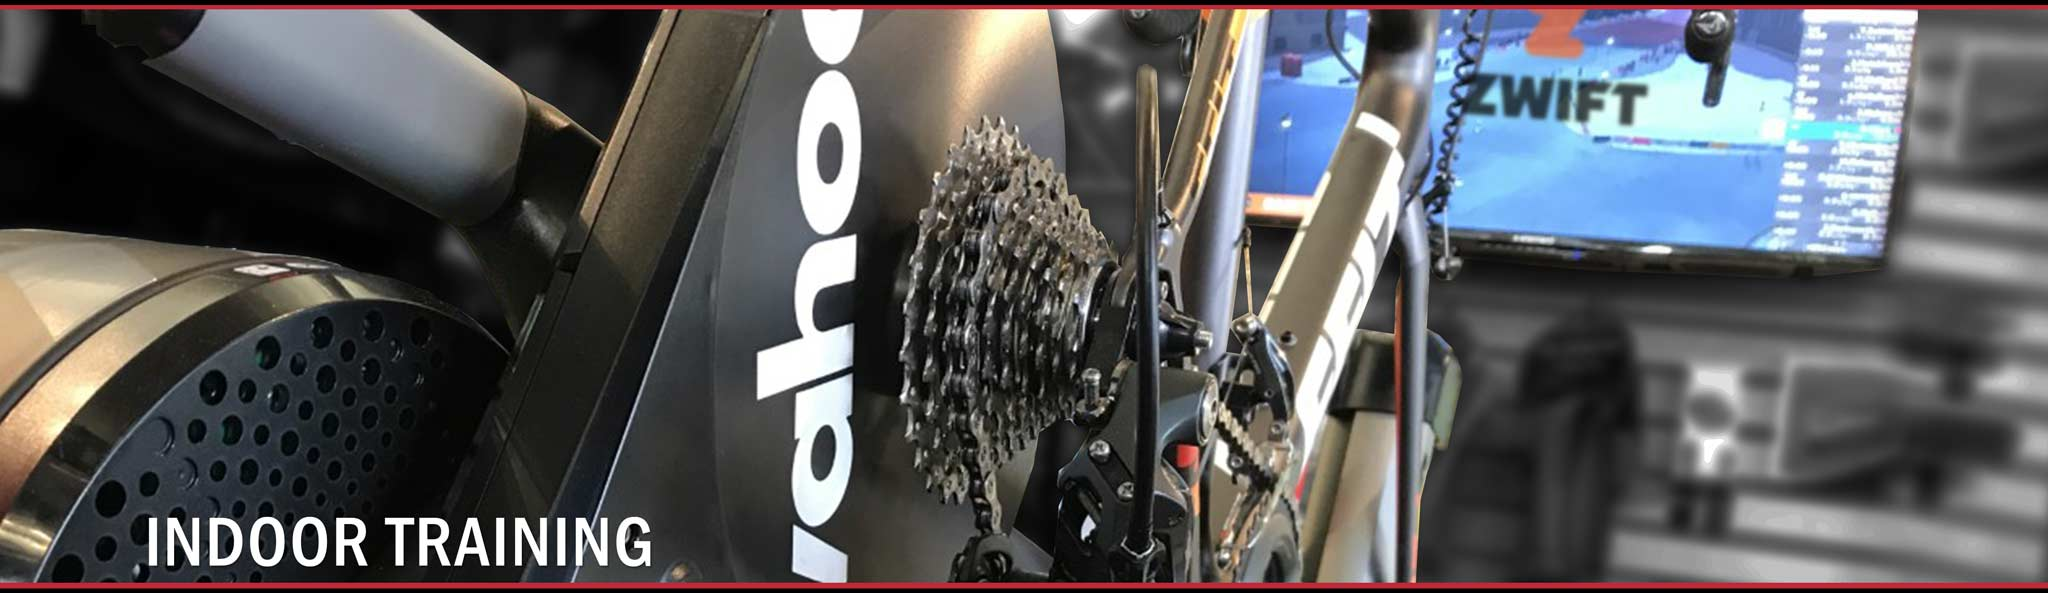 Indoor Trainers and Products at Gear West